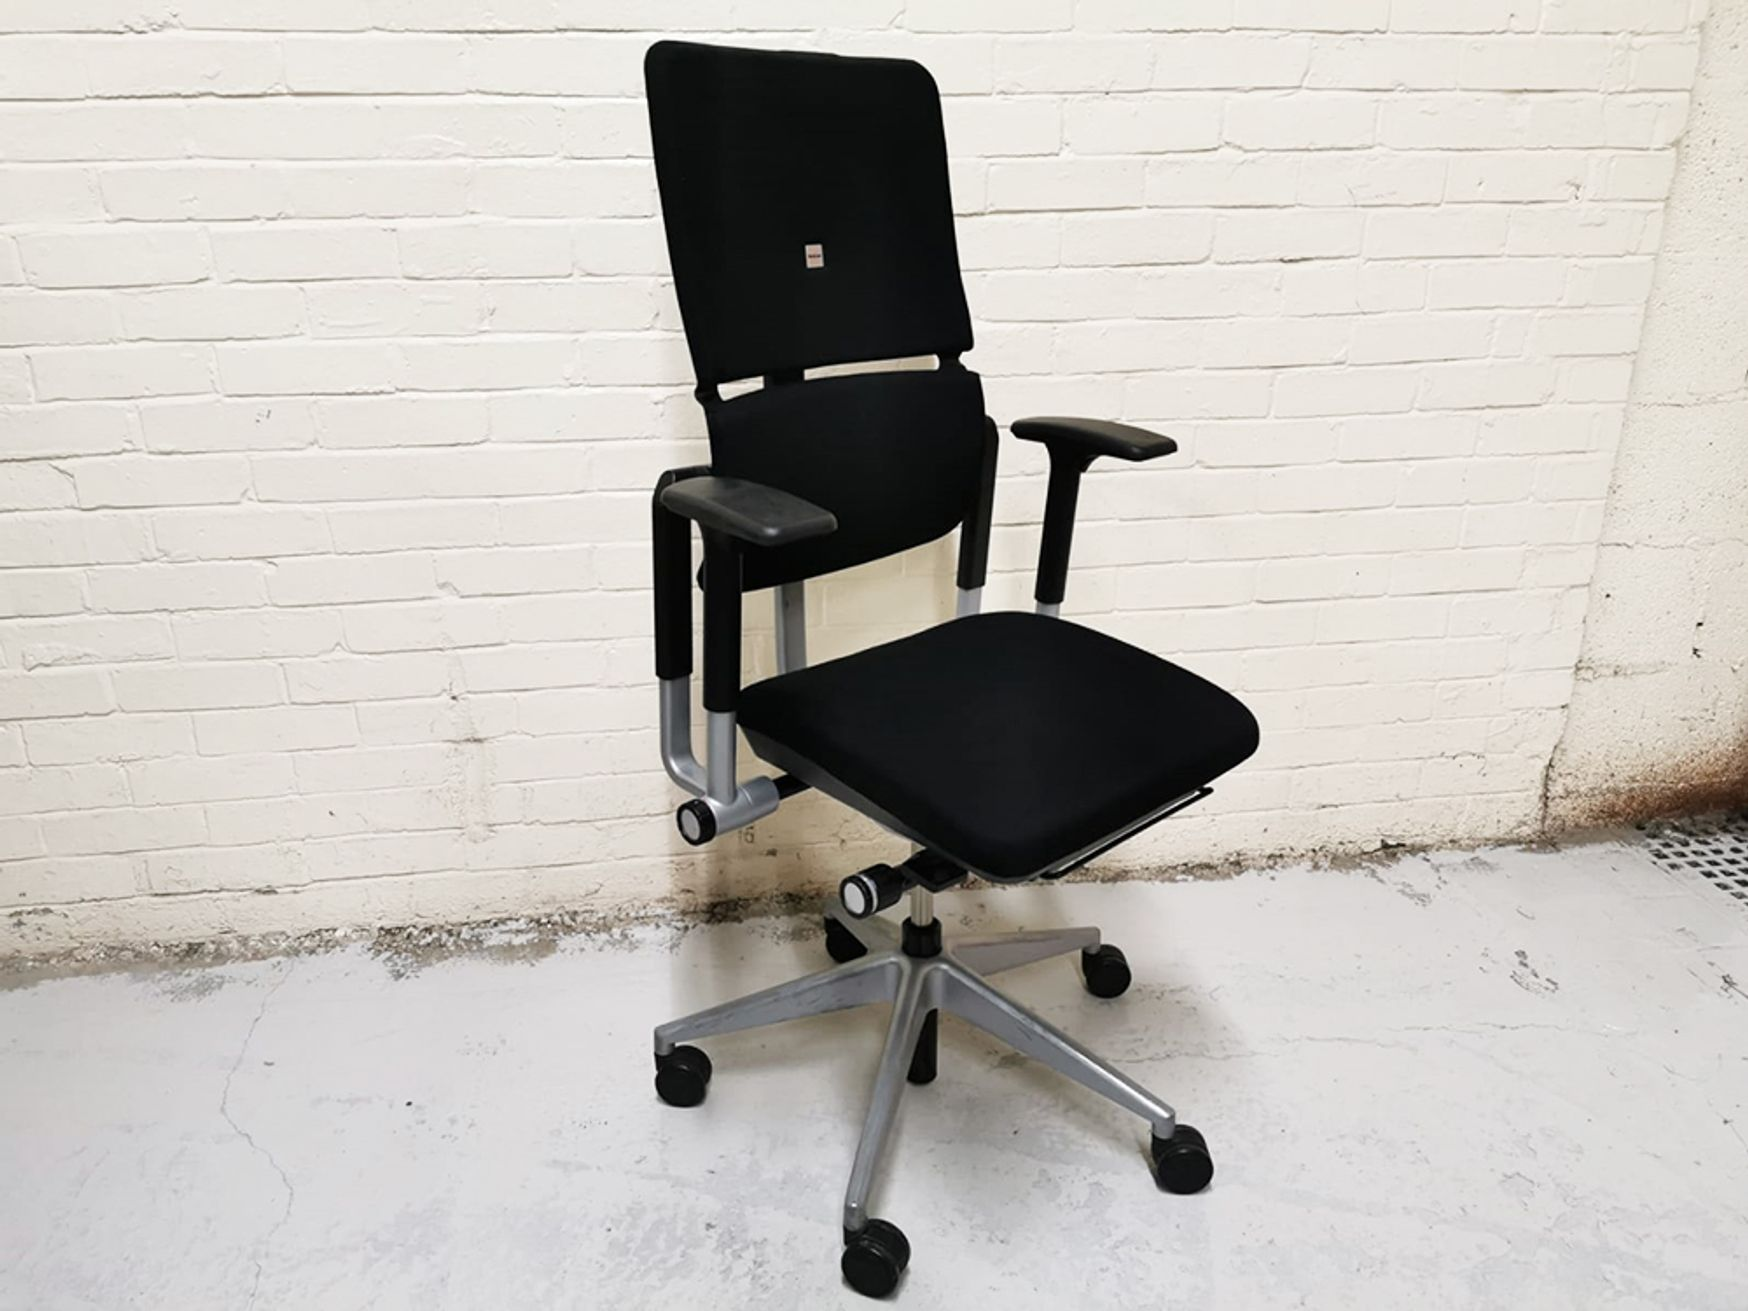 Used Steelcase Please V2 Operator Chair in Black Fabric with Aluminium Base